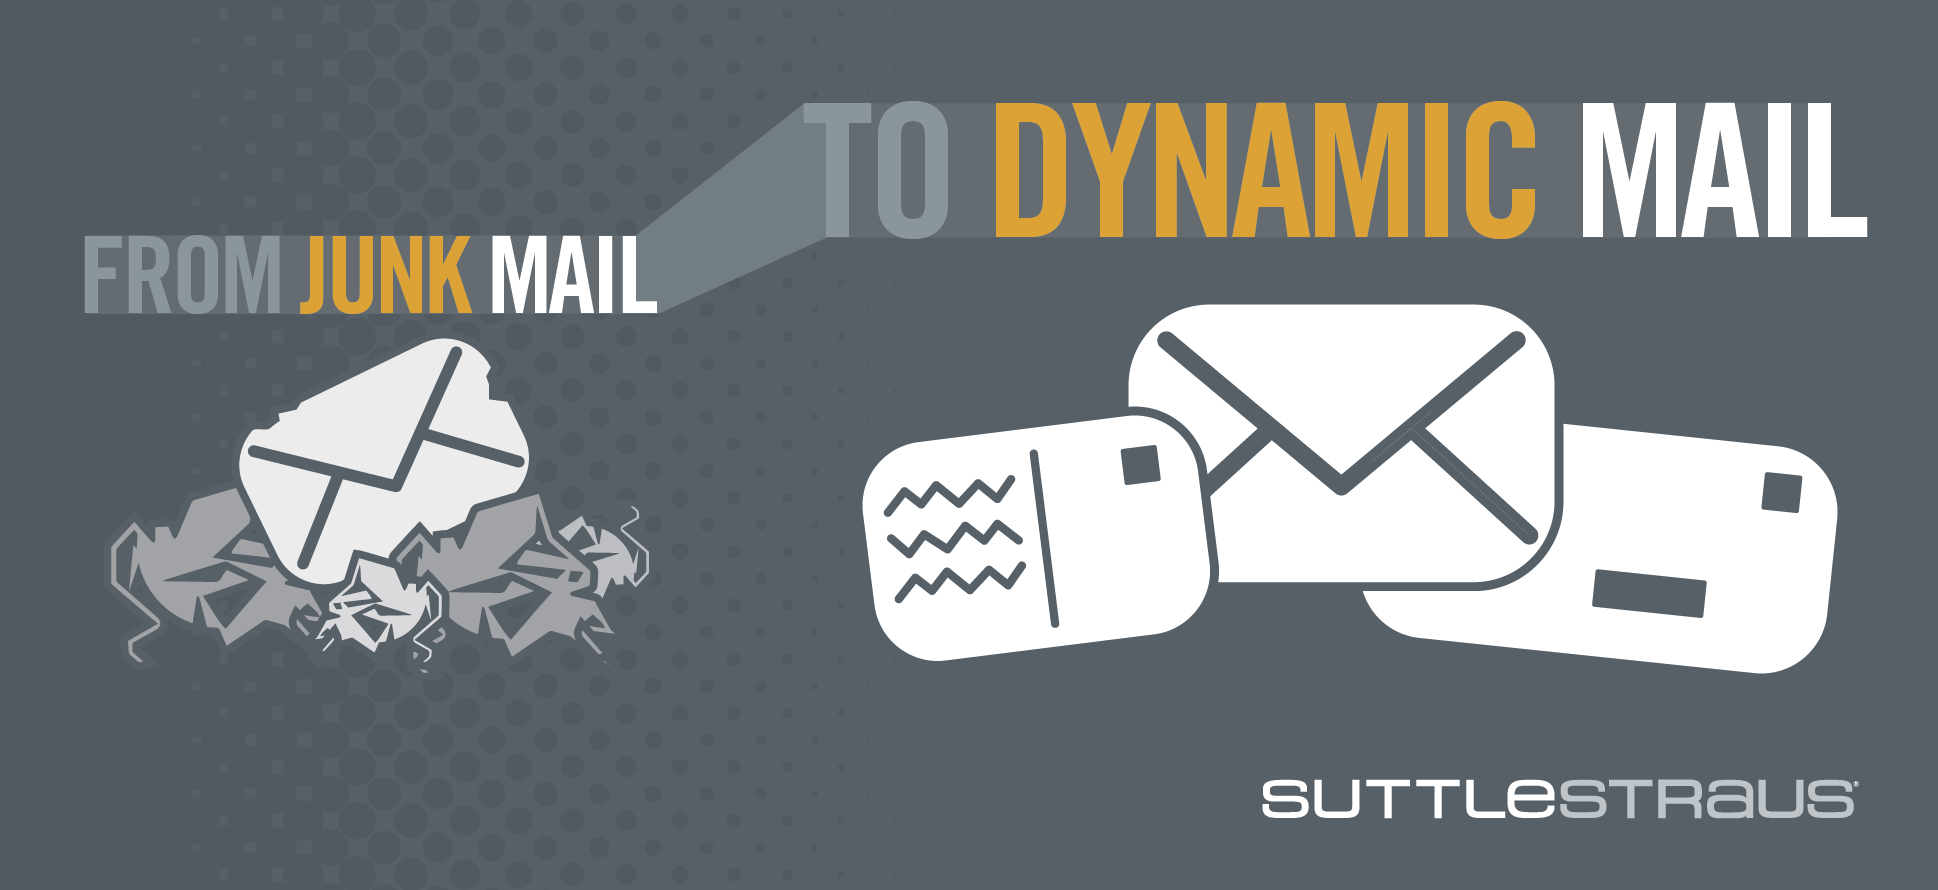 DynamicMailInfographic.png